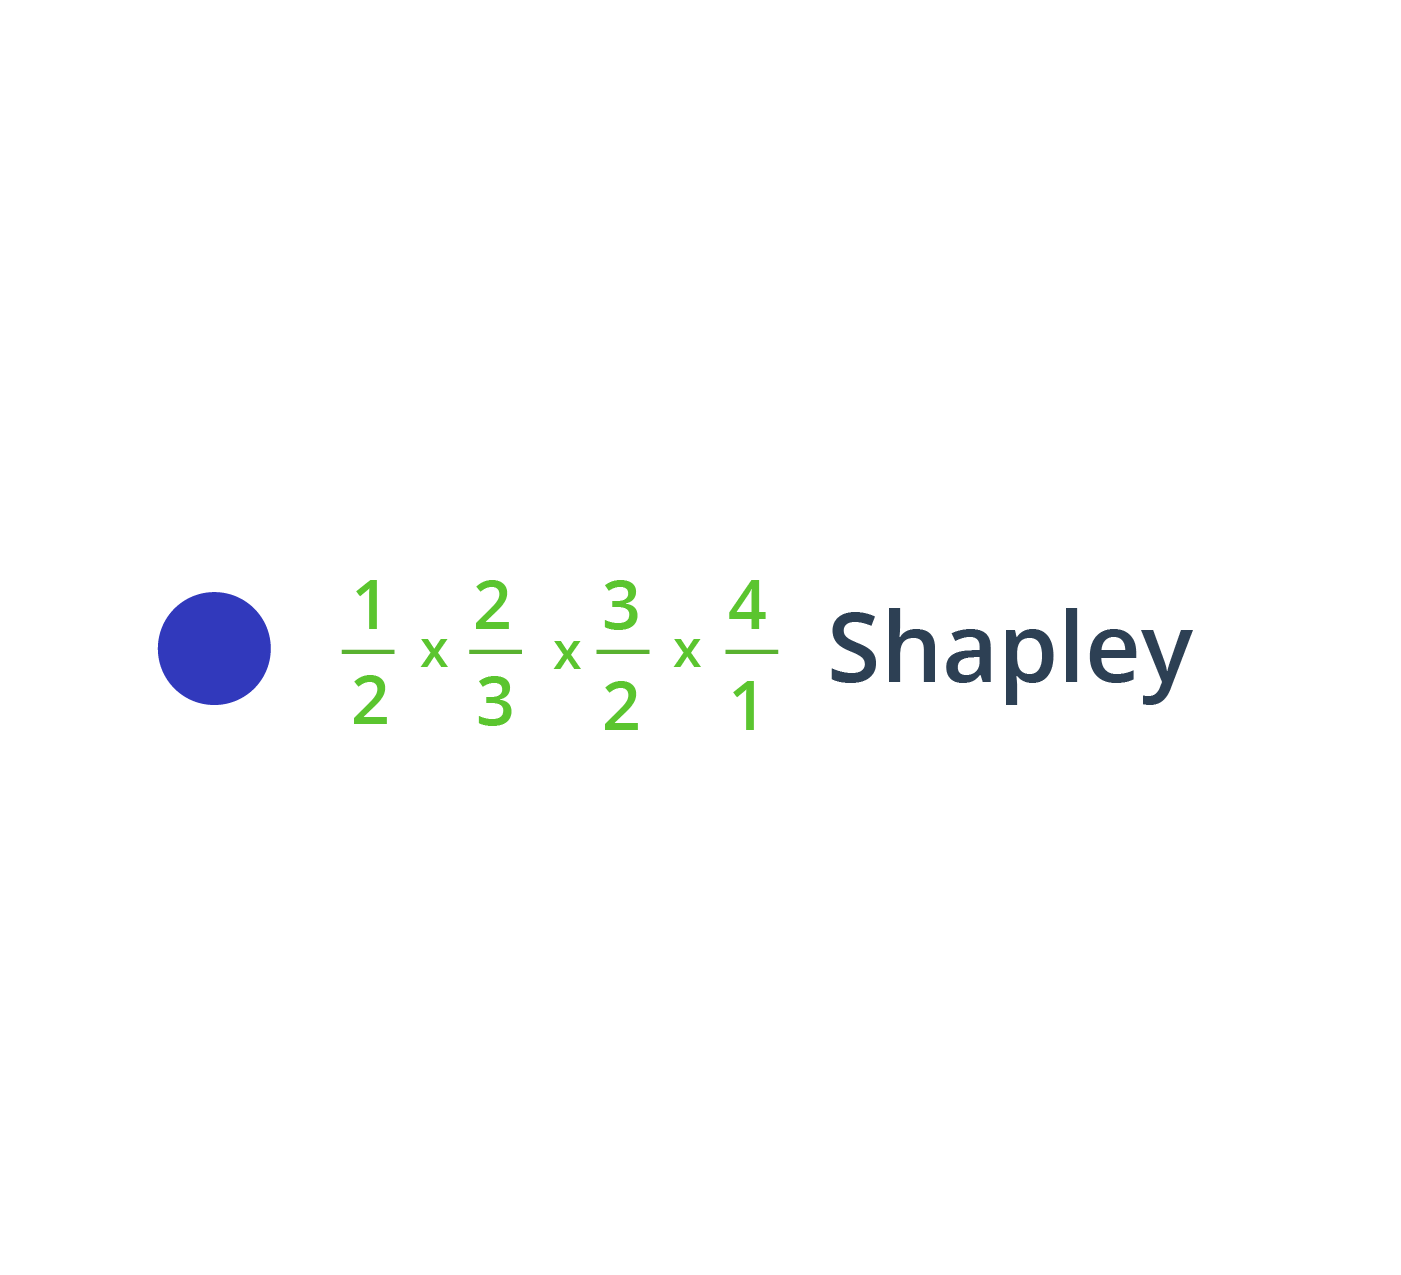 SHAPLEY (ALSO KNOWN AS GAME THEORY)